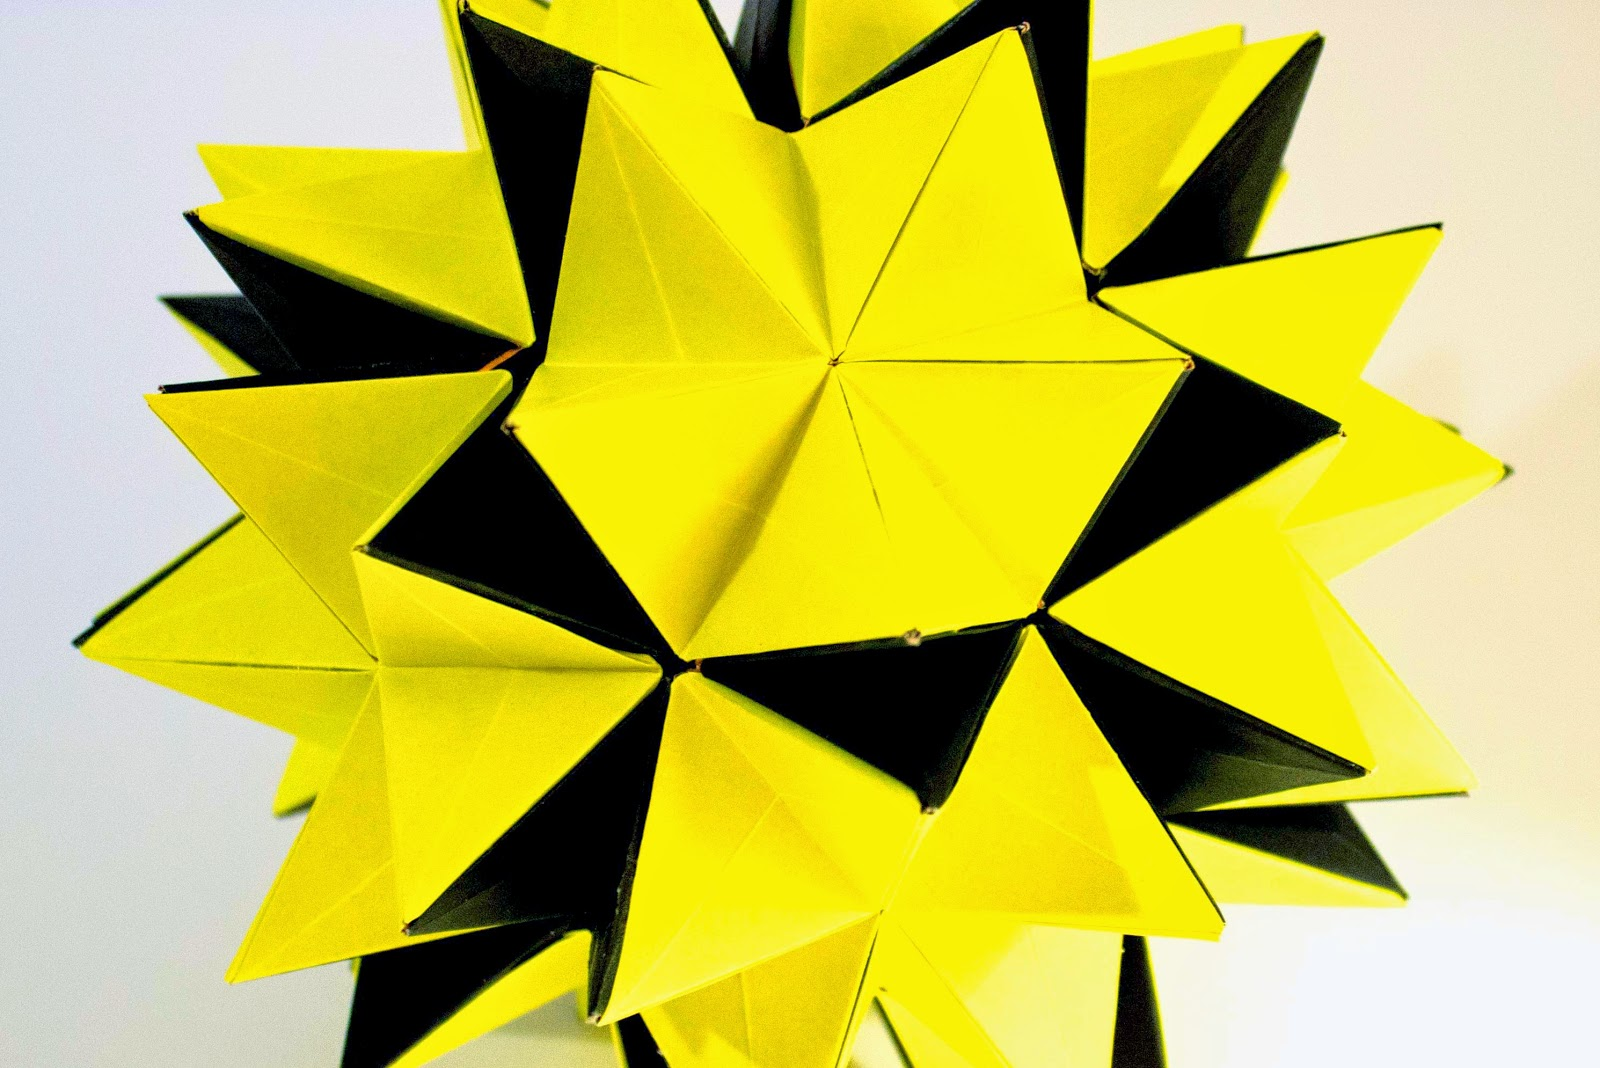 star flower origami diagram 2004 acura tl speaker wiring will fold for paper revealed popup design by valentina gonchar